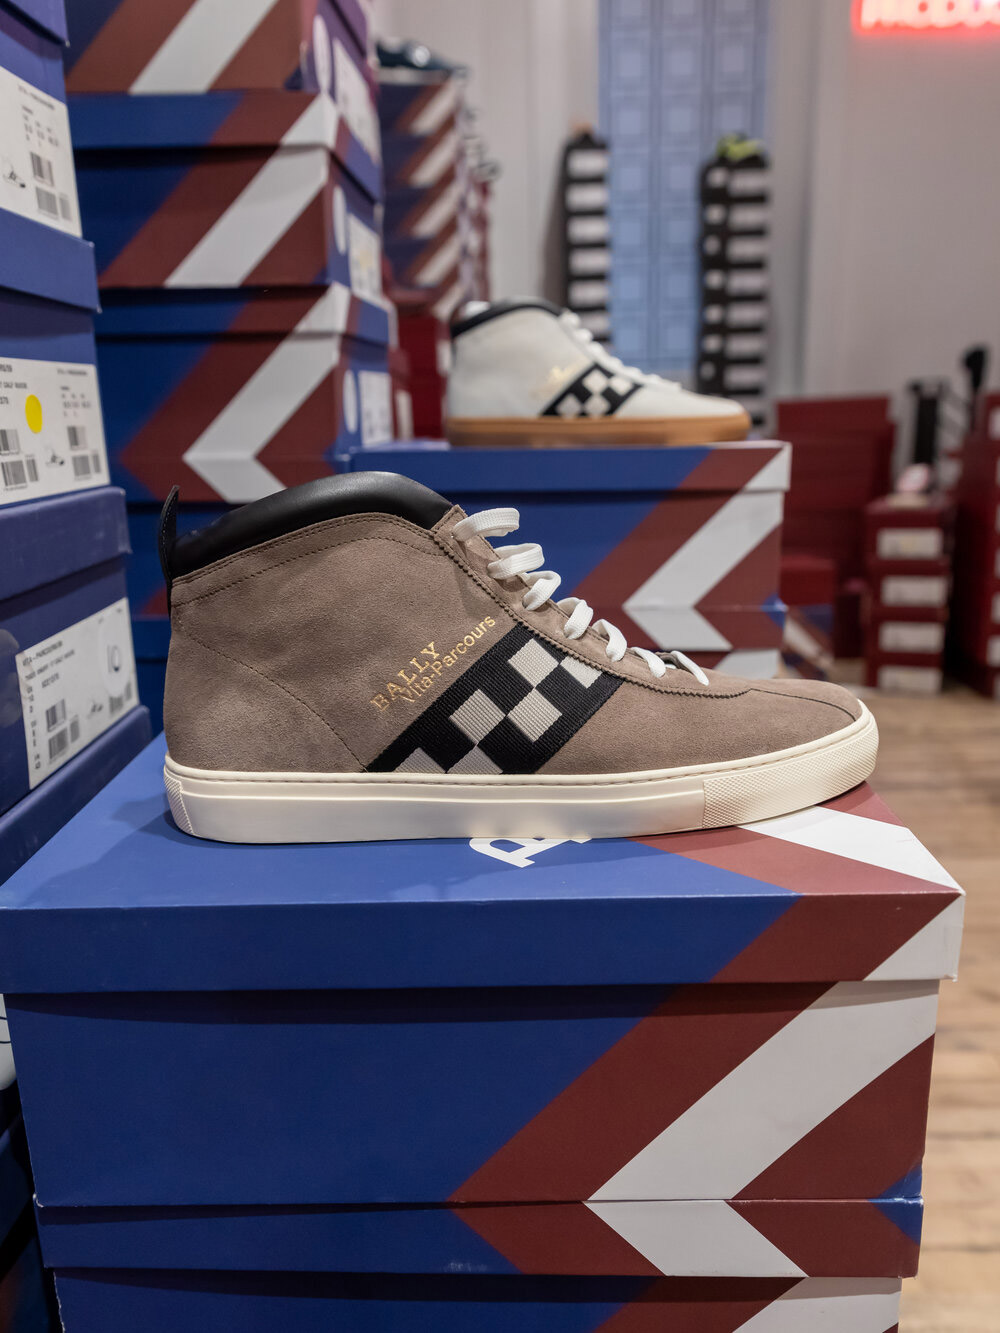 Bally Sample Sale in Images